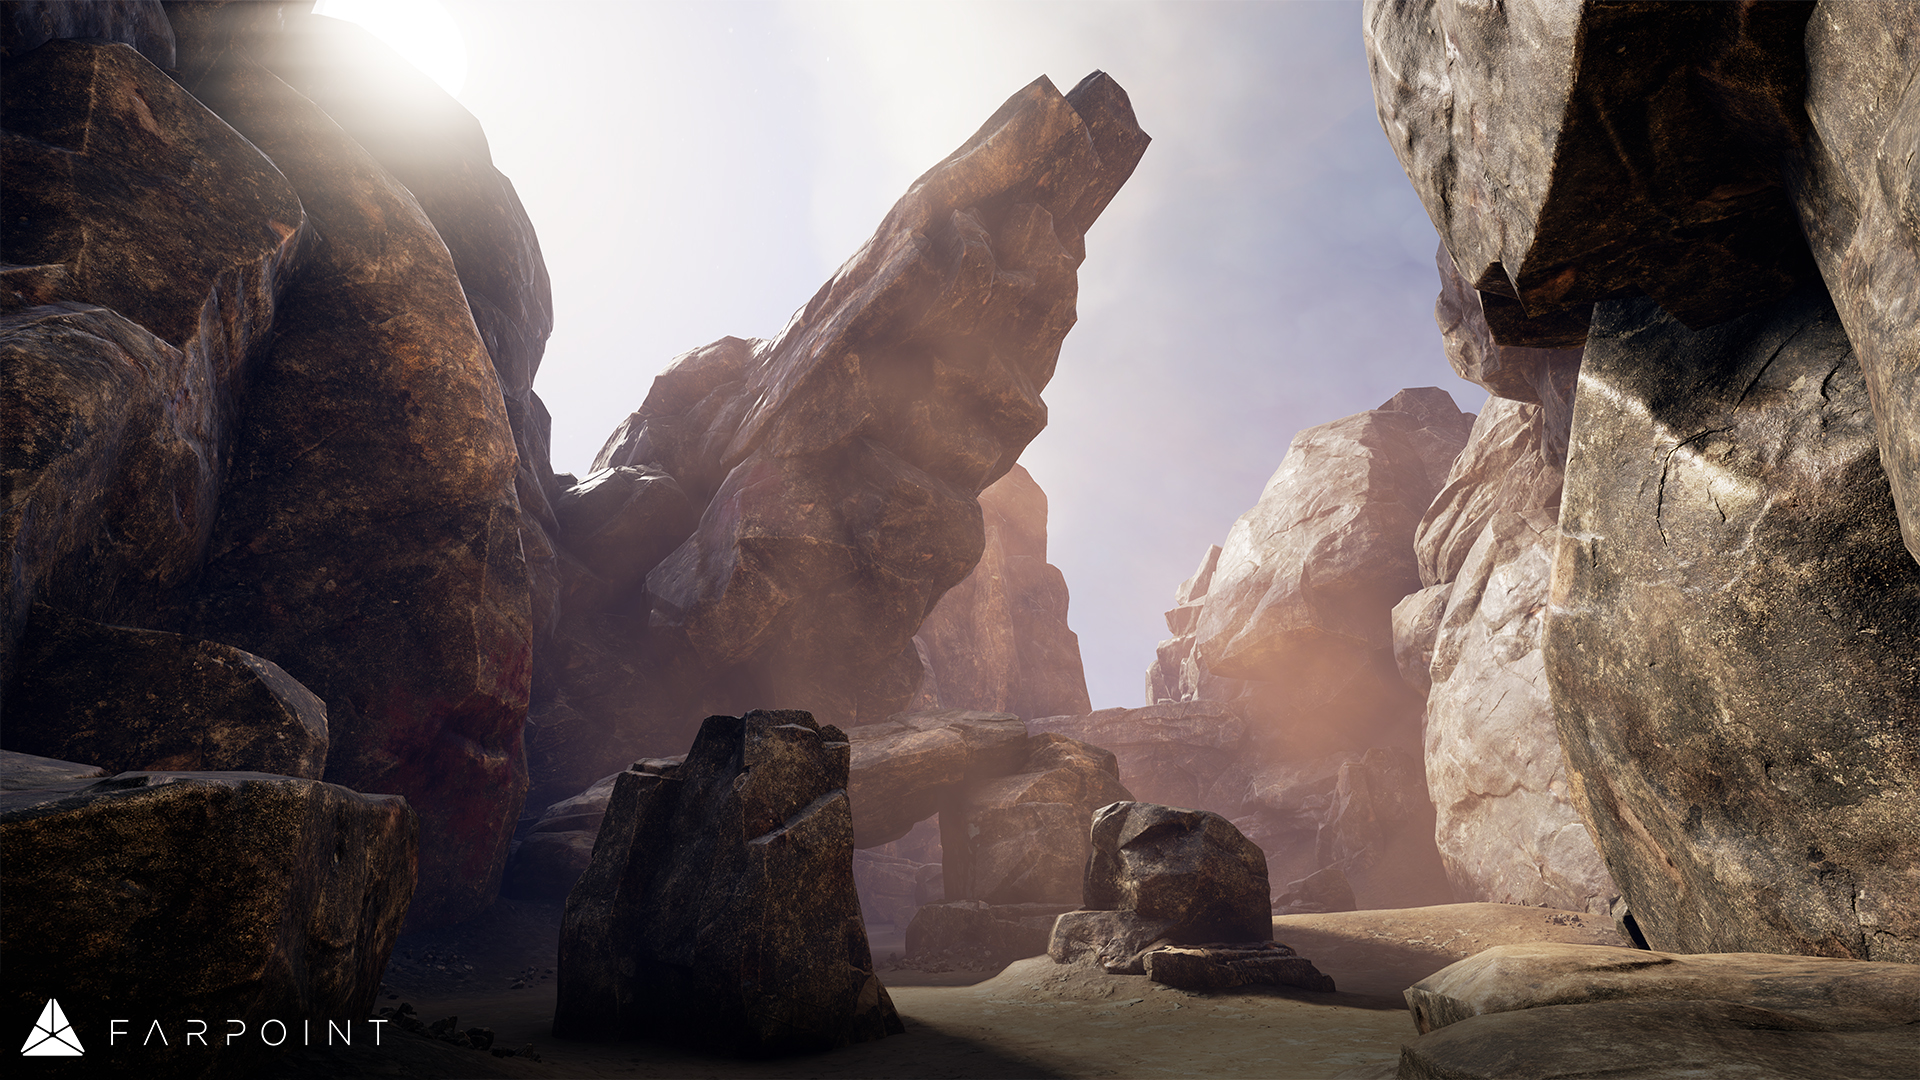 A Look Inside Farpoint's Rendering Techniques for VR — Impulse Gear